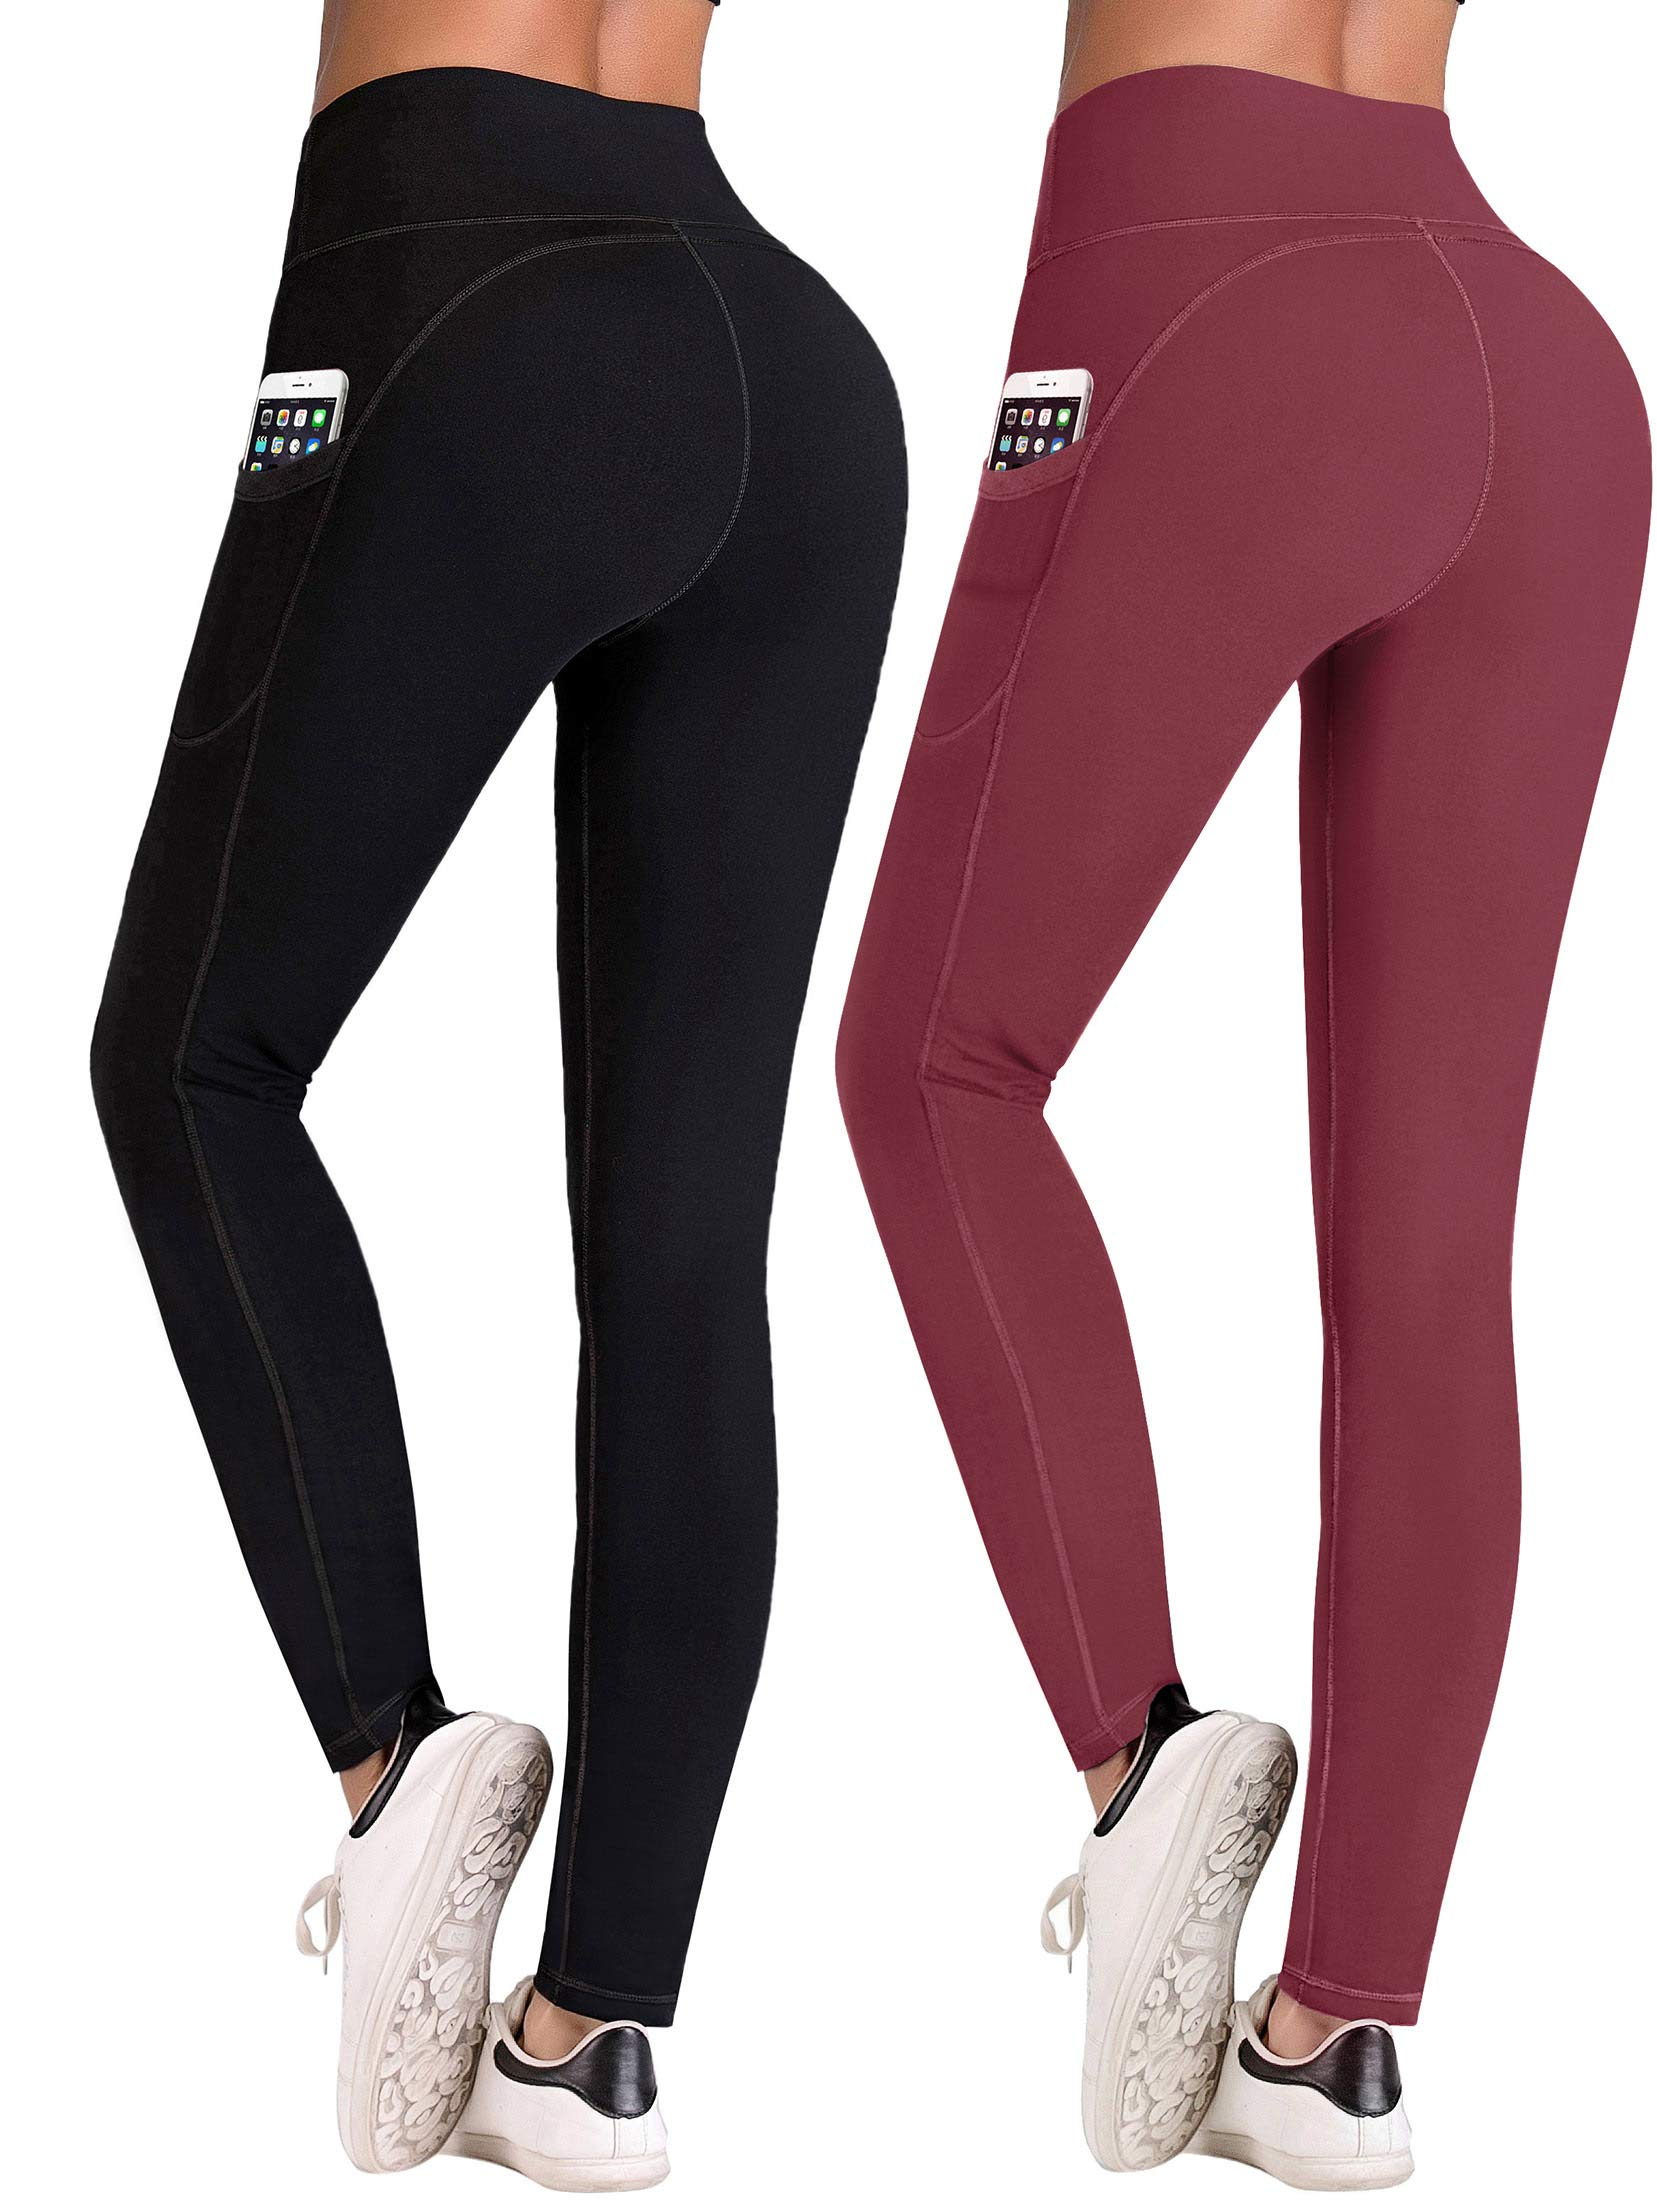 IUGA High Waist Yoga Pants with Pockets, Tummy Control, Workout Pants for Women 4 Way Stretch Yoga Leggings with Pockets(Black/Wine 2Pack, XX-Large)